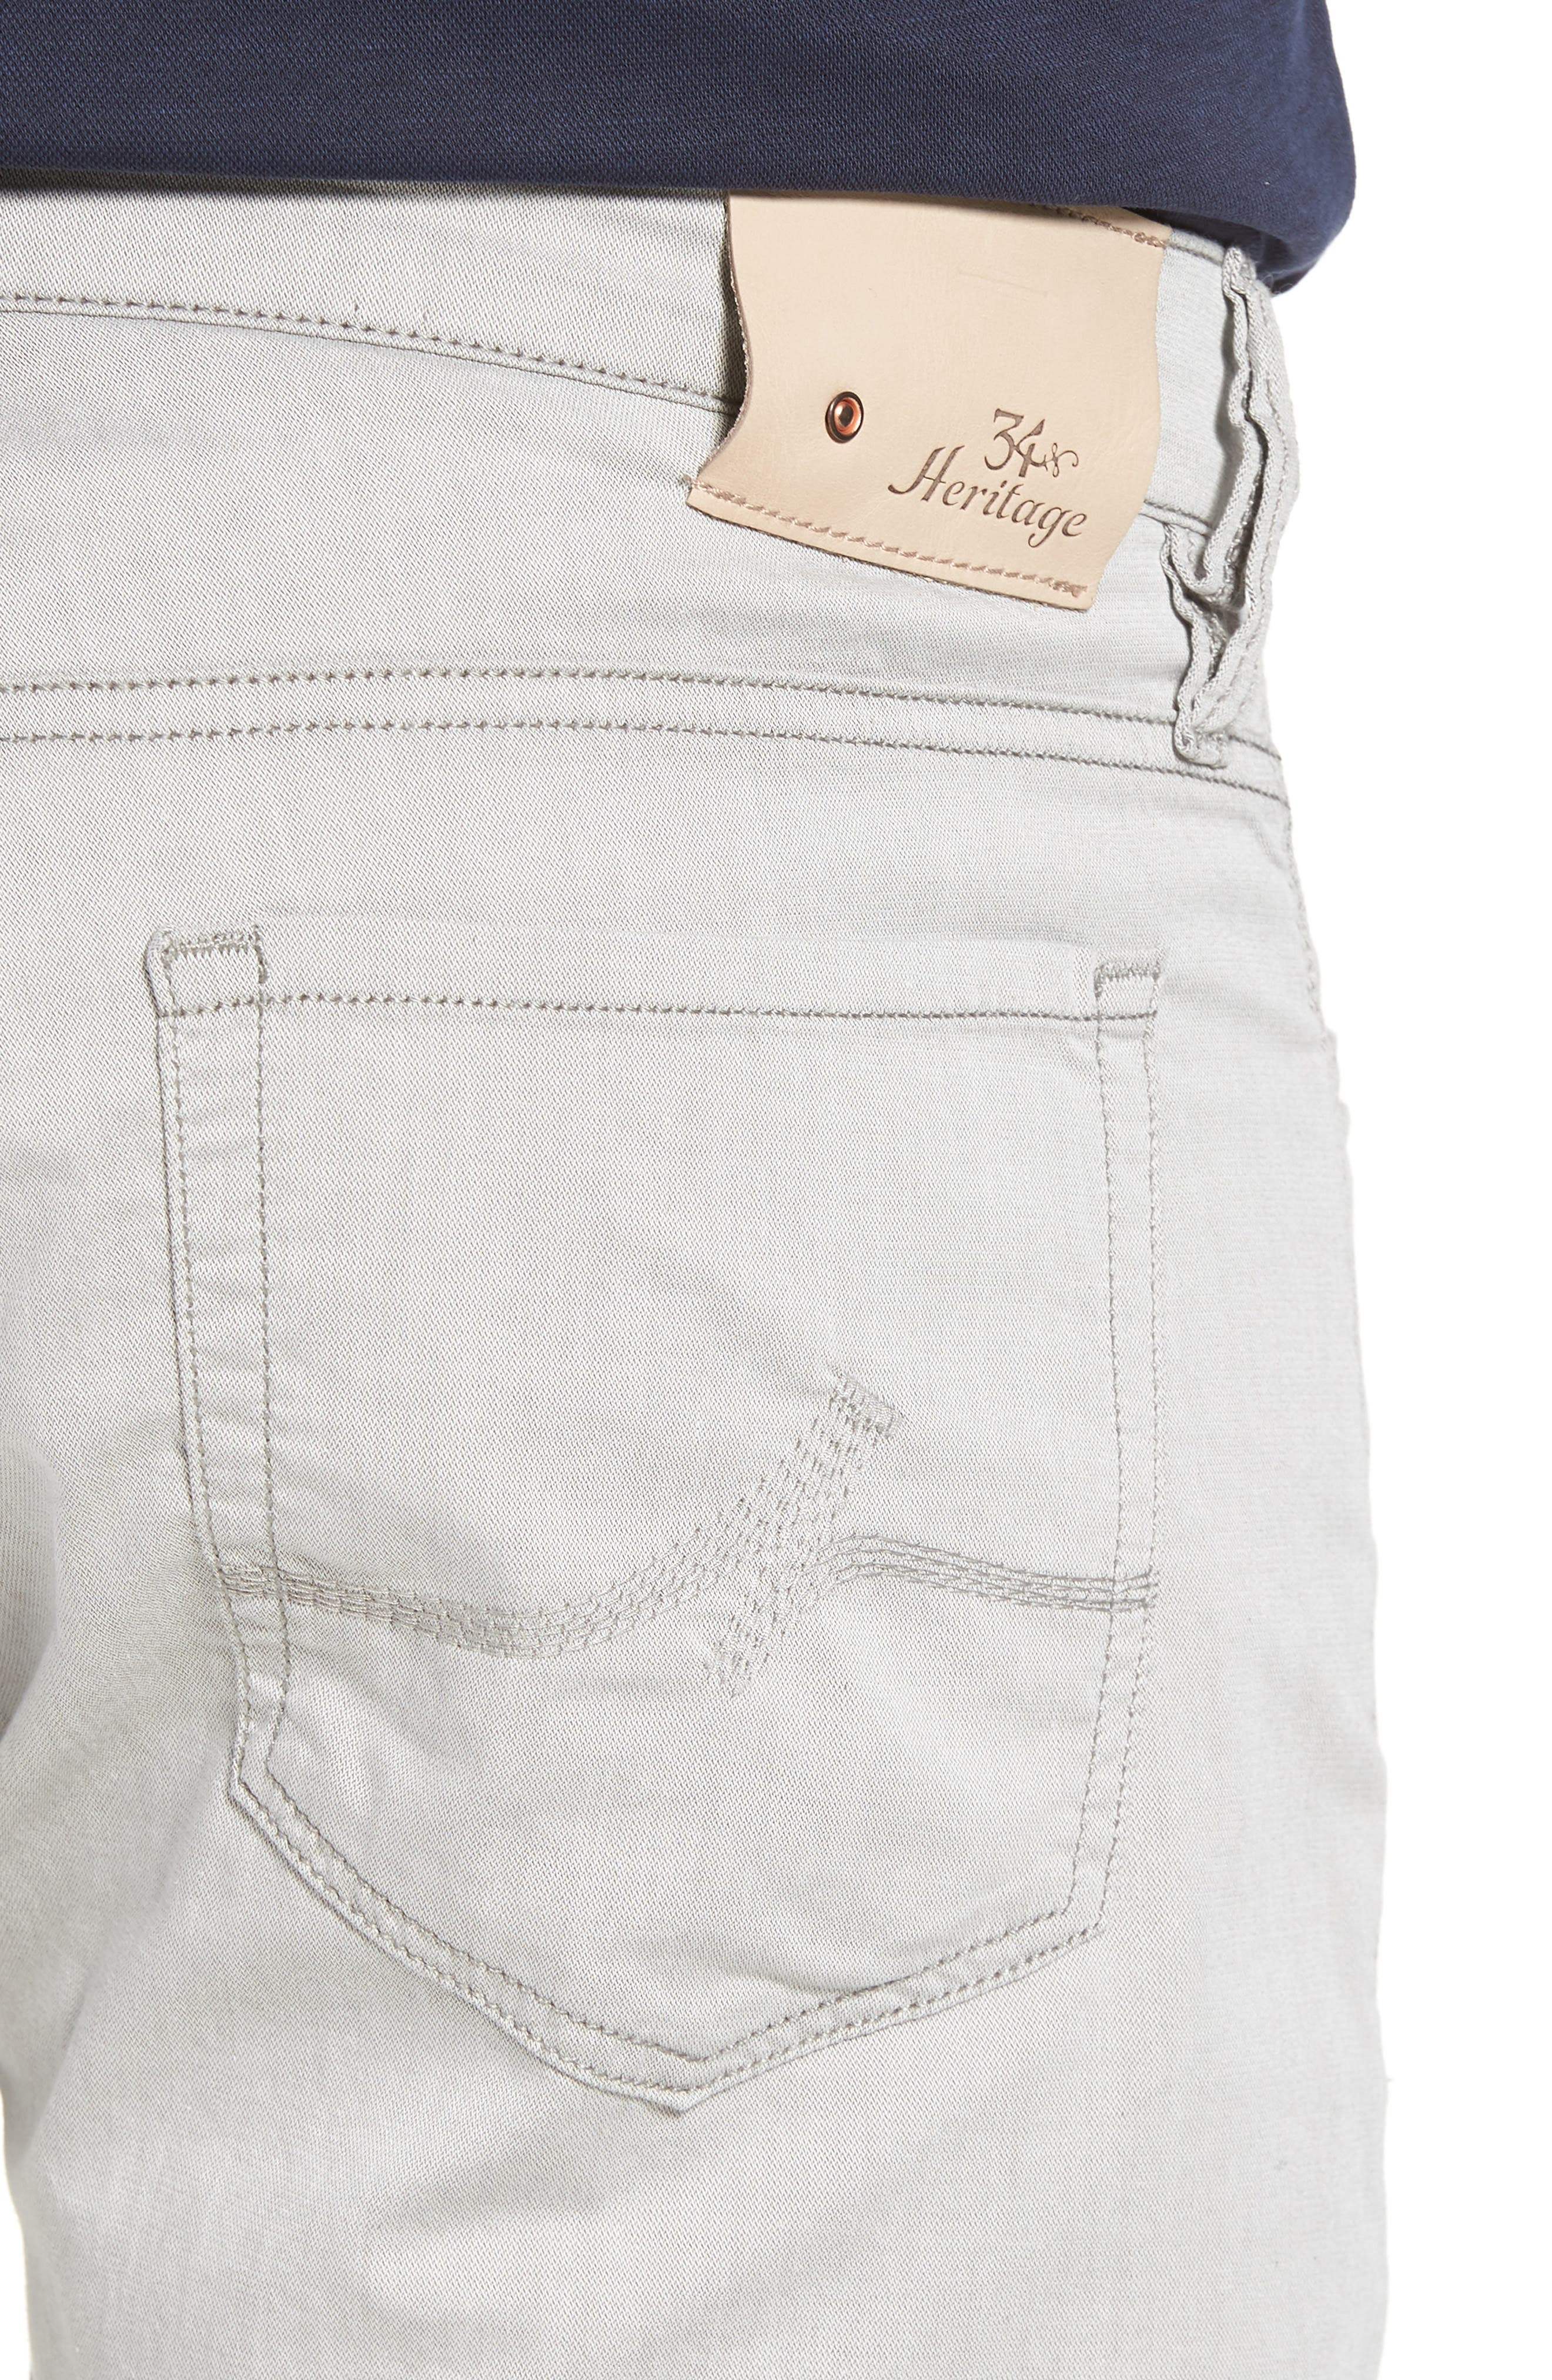 Courage Straight Leg Jeans,                             Alternate thumbnail 4, color,                             LATTE HERRINGBONE REVERSED